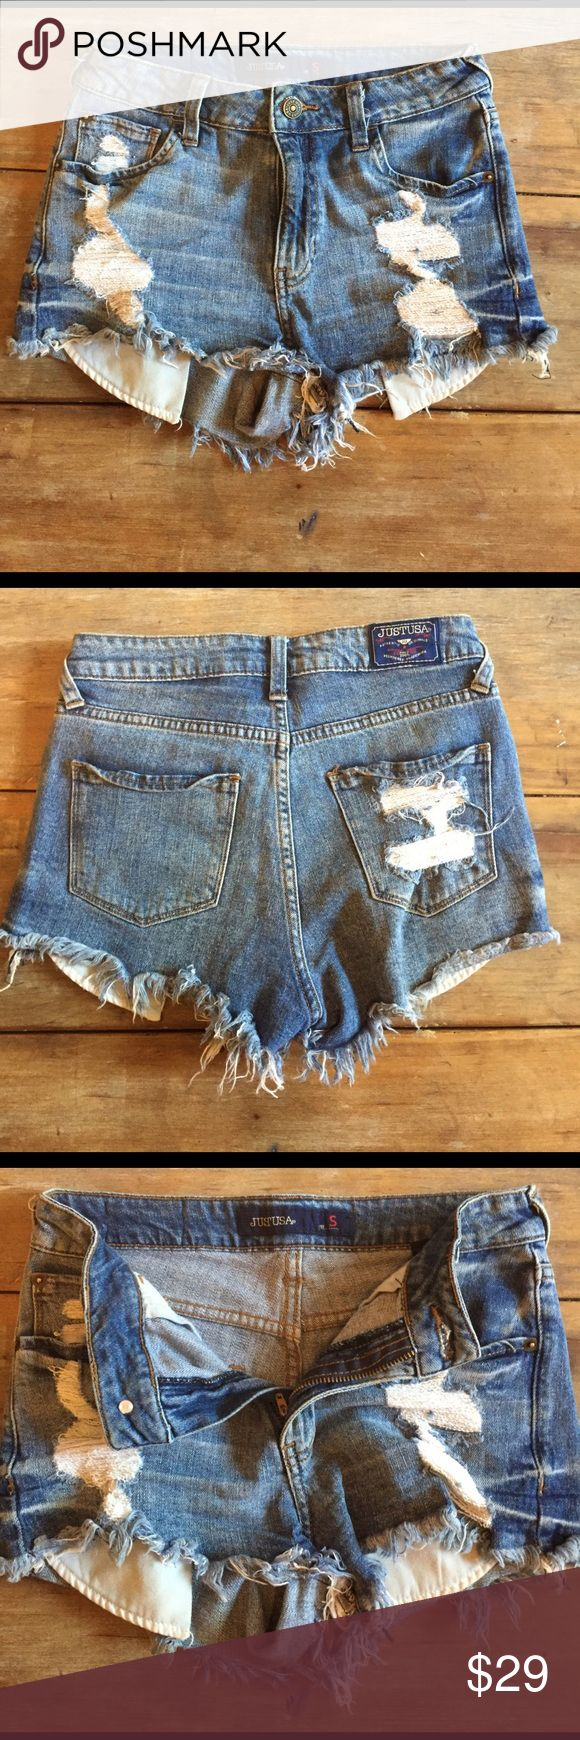 JUST USA -- high waisted denim shorts Size small (25-26). Distressed high waisted denim shorts. 10/10 condition. Purchased from Apricot Lane Boutique Levi's Shorts Jean Shorts